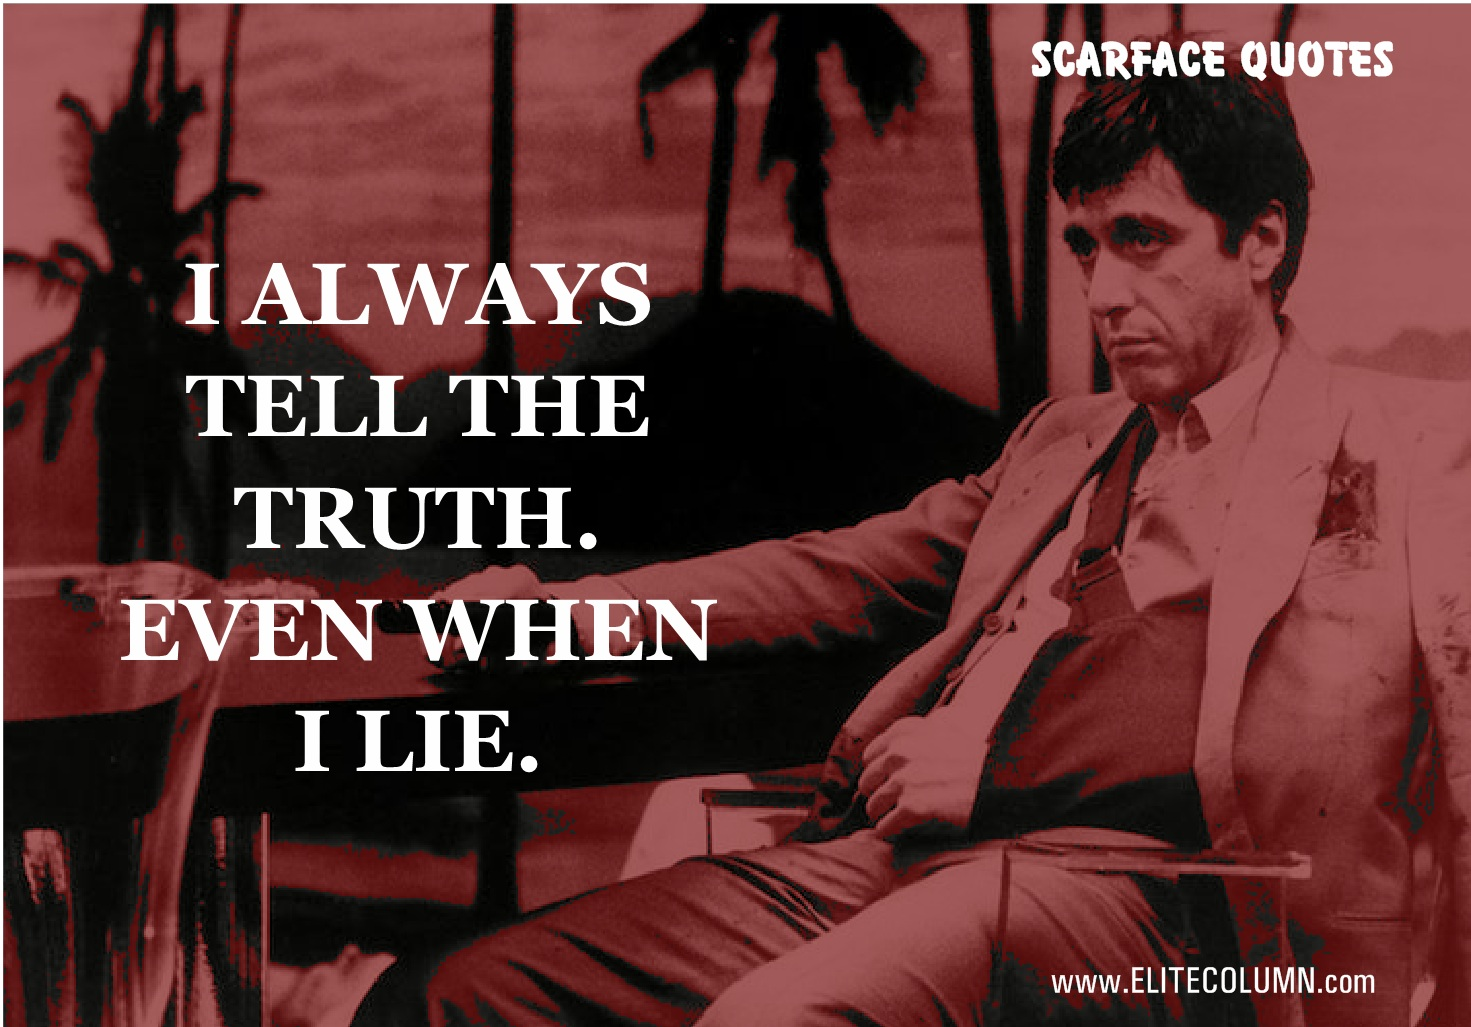 Scarface Quotes Scarface Quotes 2 | EliteColumn Scarface Quotes